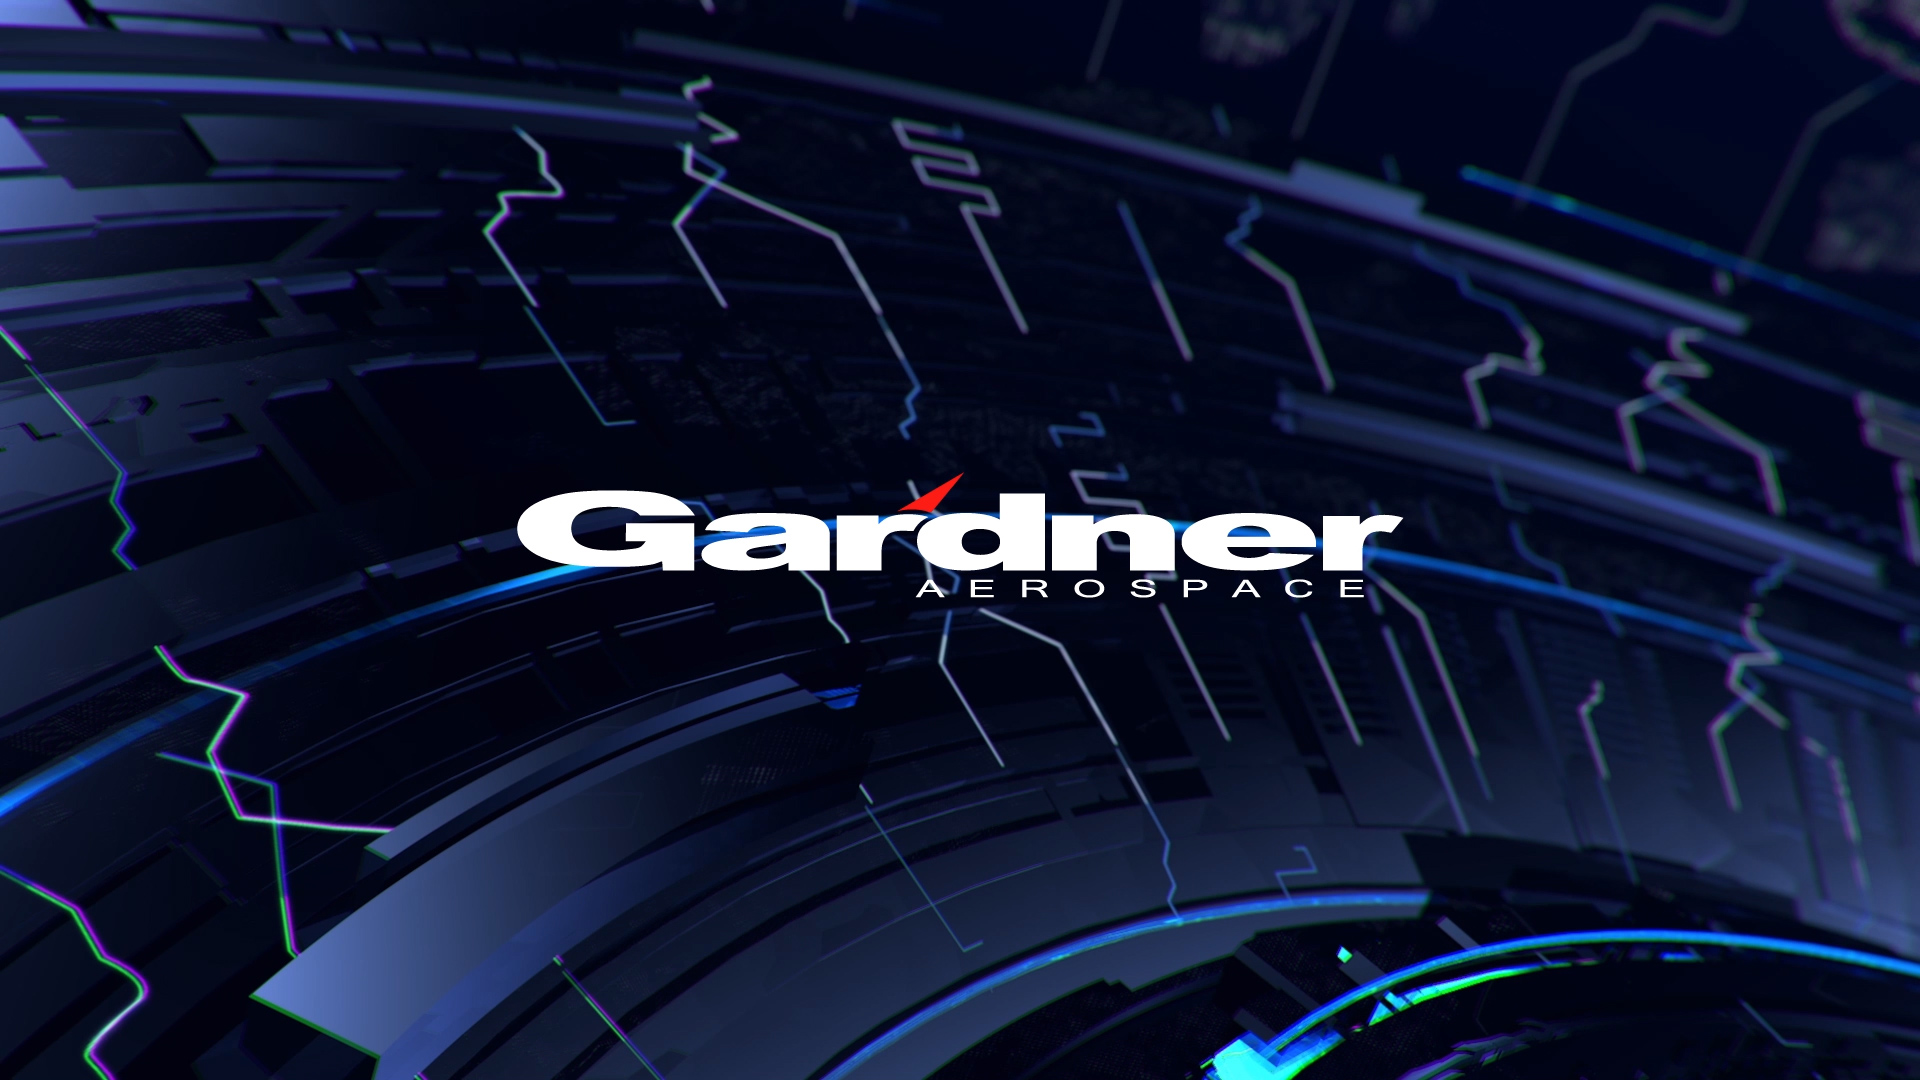 Gardner Aerospace Motion Graphics by Ouno Creative, Hampshire.